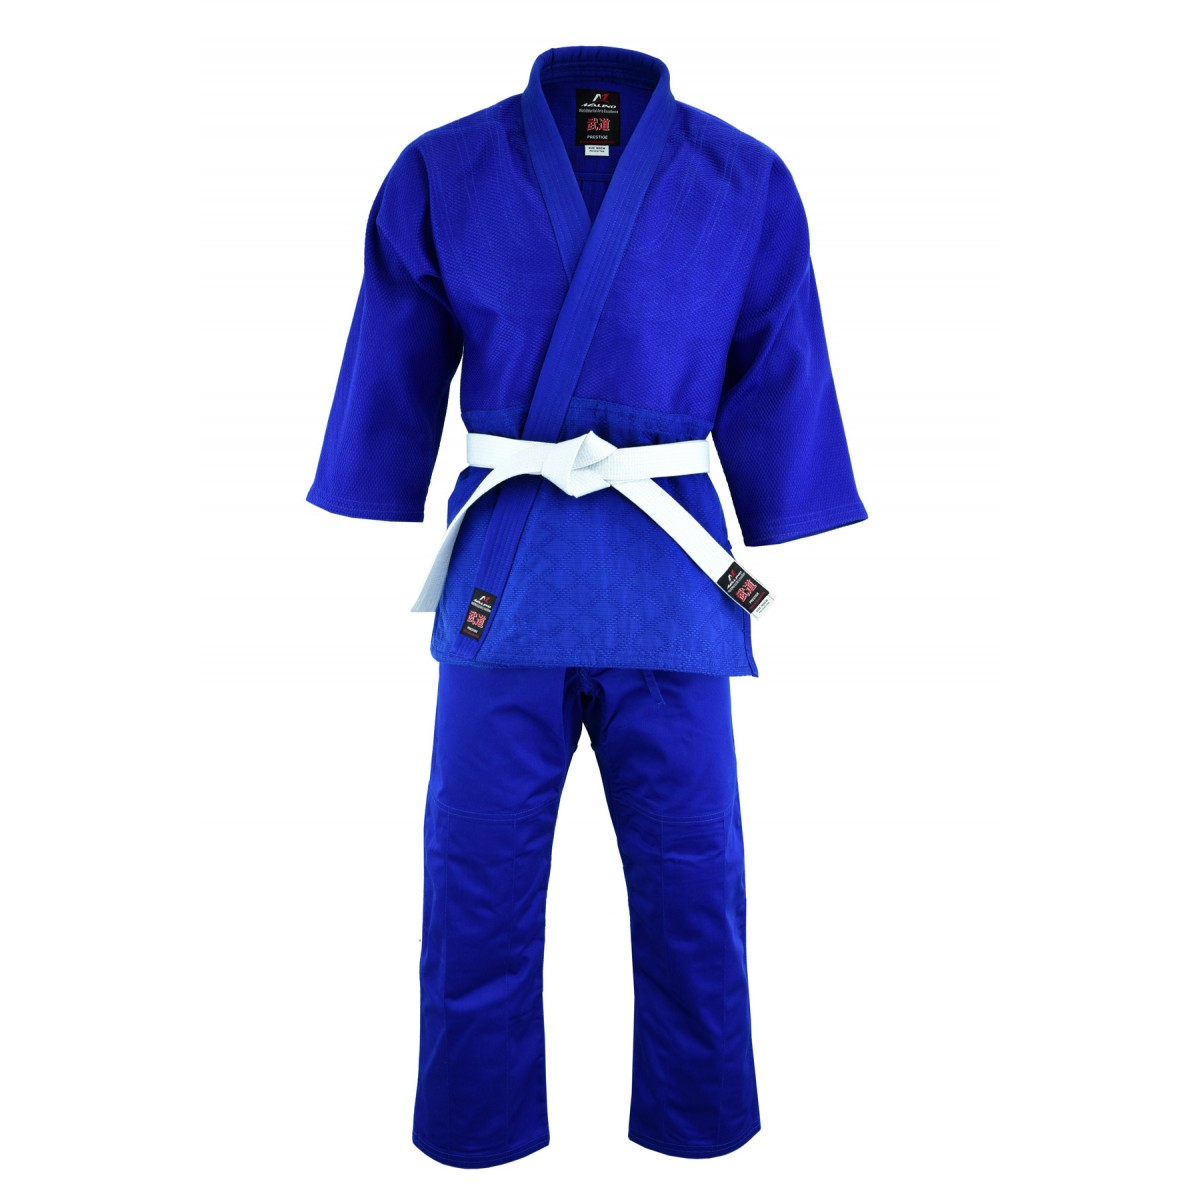 Malino Adult Heavyweight Judo Suit Blue - 750g